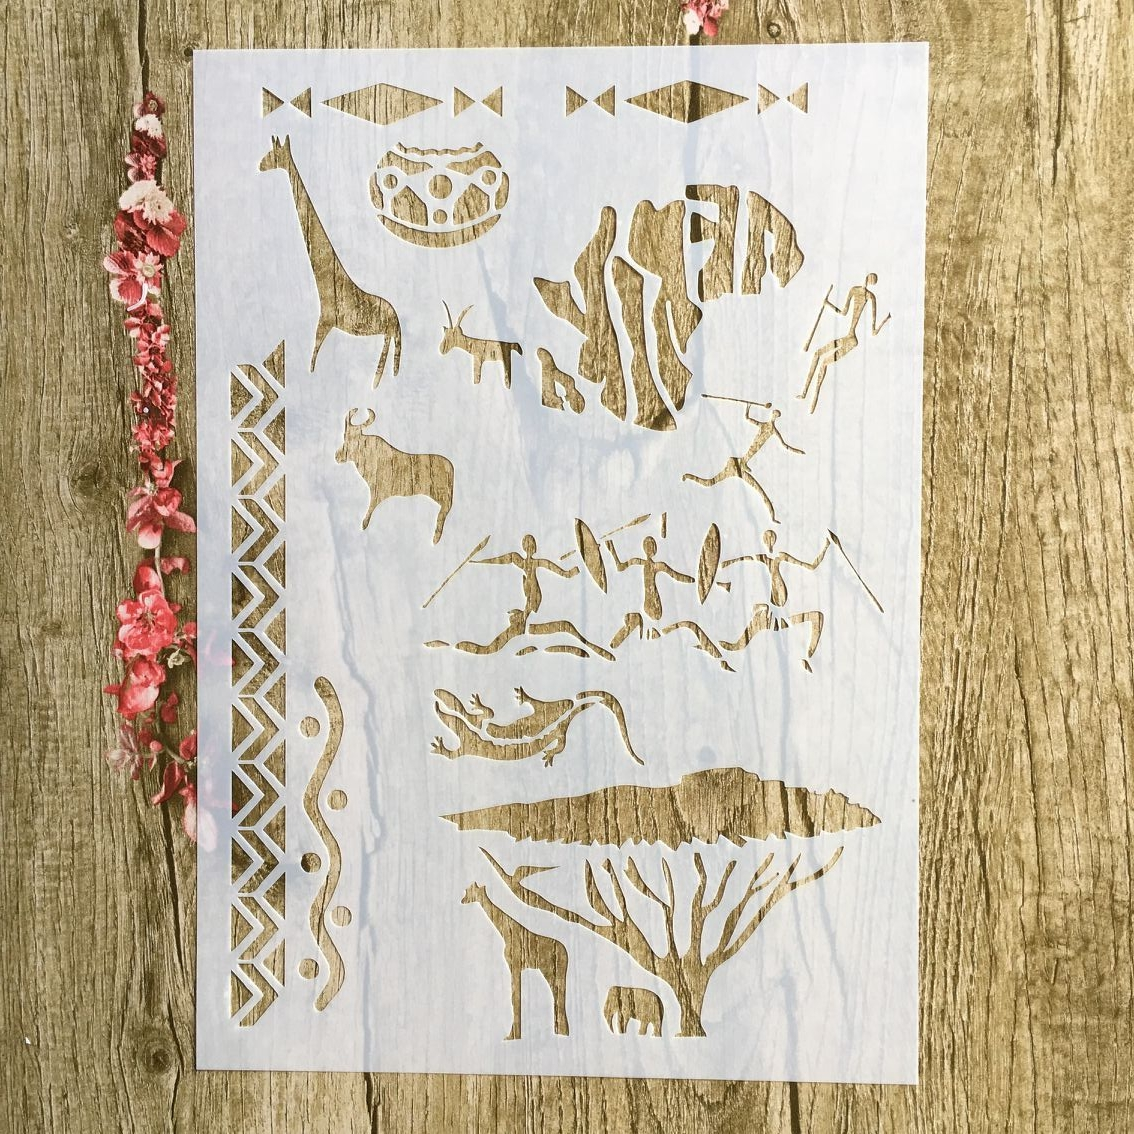 29 * 21cm Primitive Hunting Giraffe DIY Stencils Wall Painting Scrapbook Coloring Embossing Album Decorative Paper Card Template